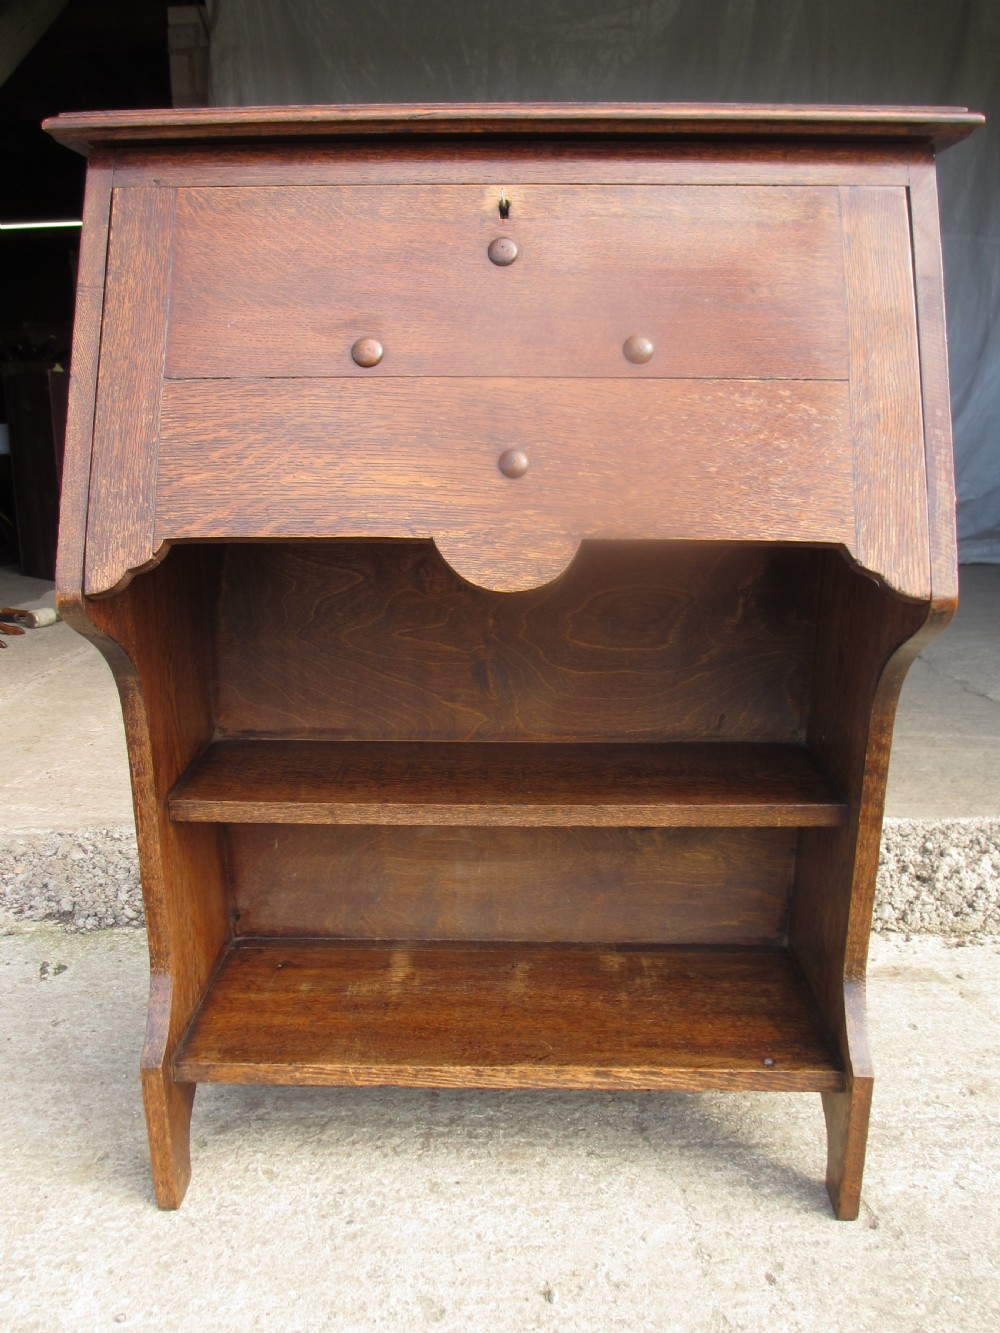 edwardian oak bureau bookcase with lockable work station